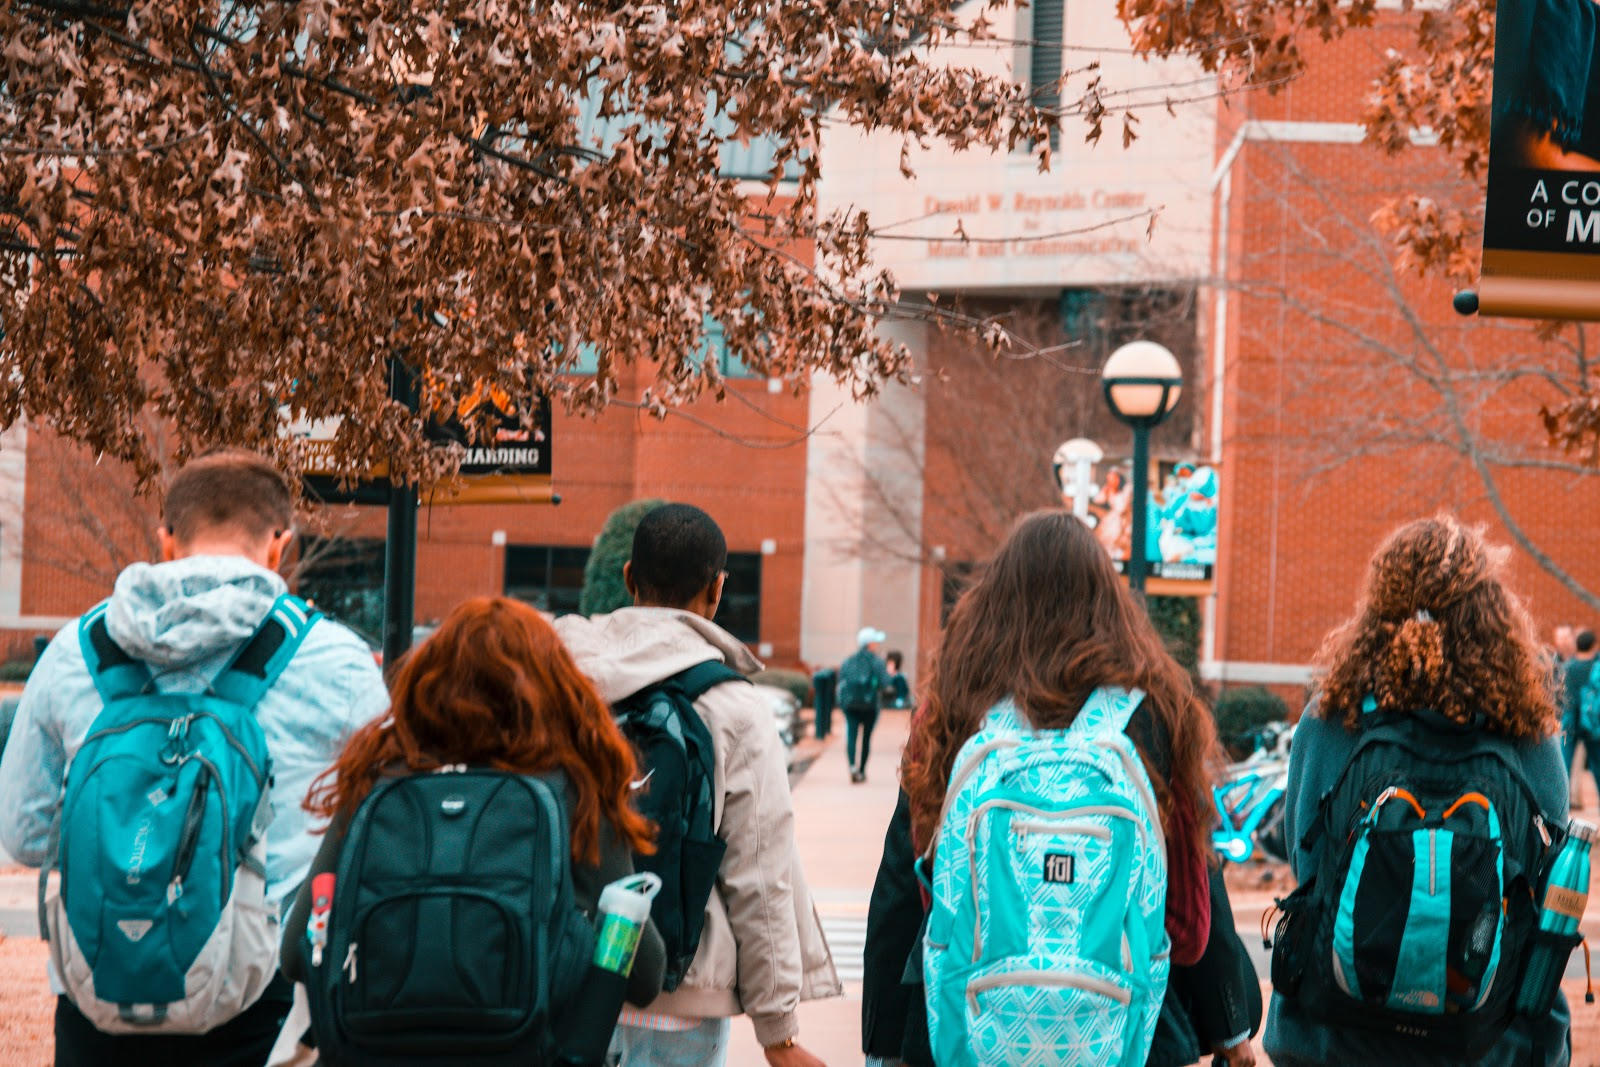 Group of USC students with backpacks walking on the campus